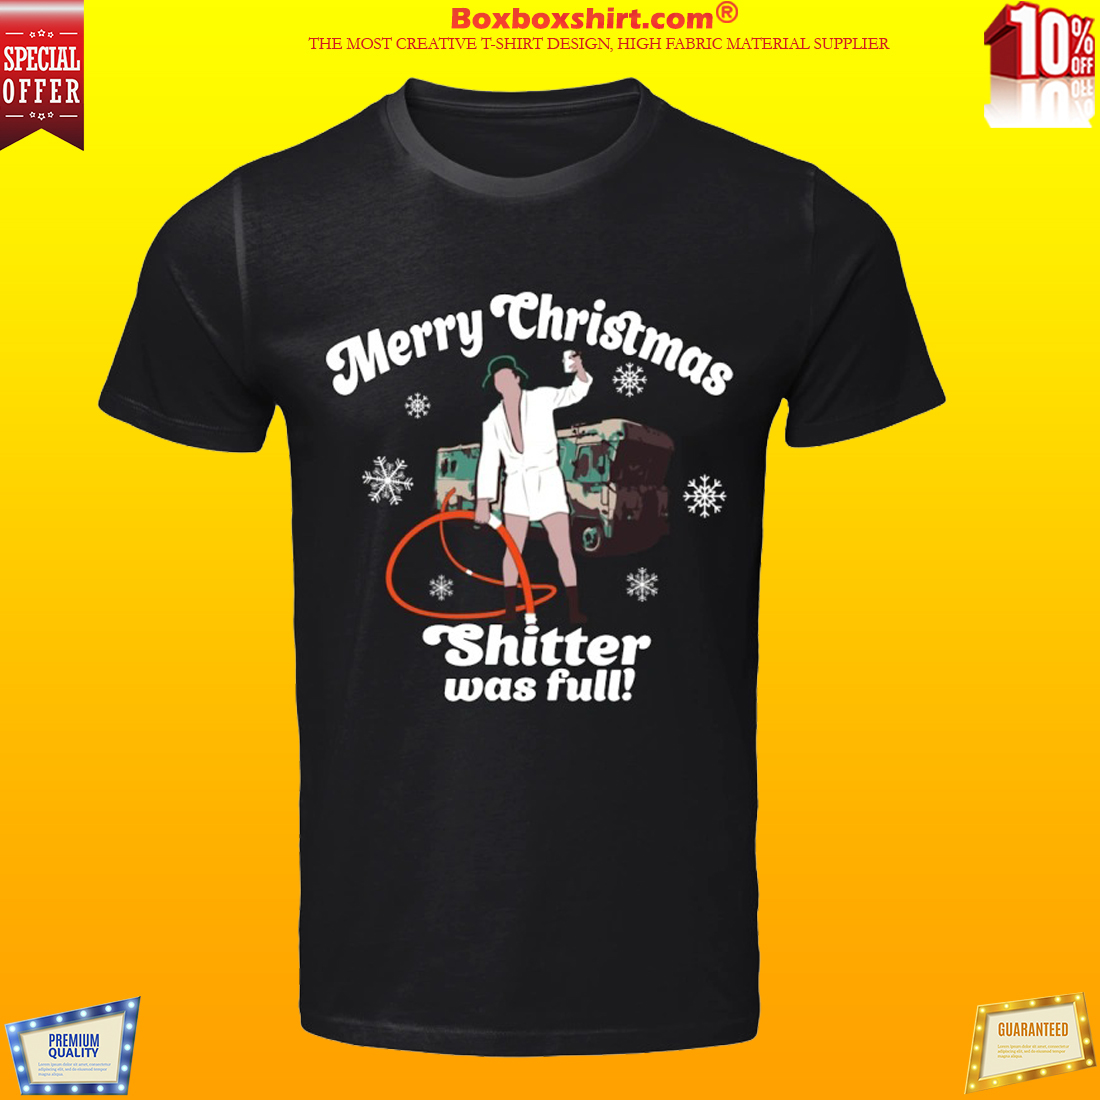 Merry Christmas shitter was full shirt and sweatshirt